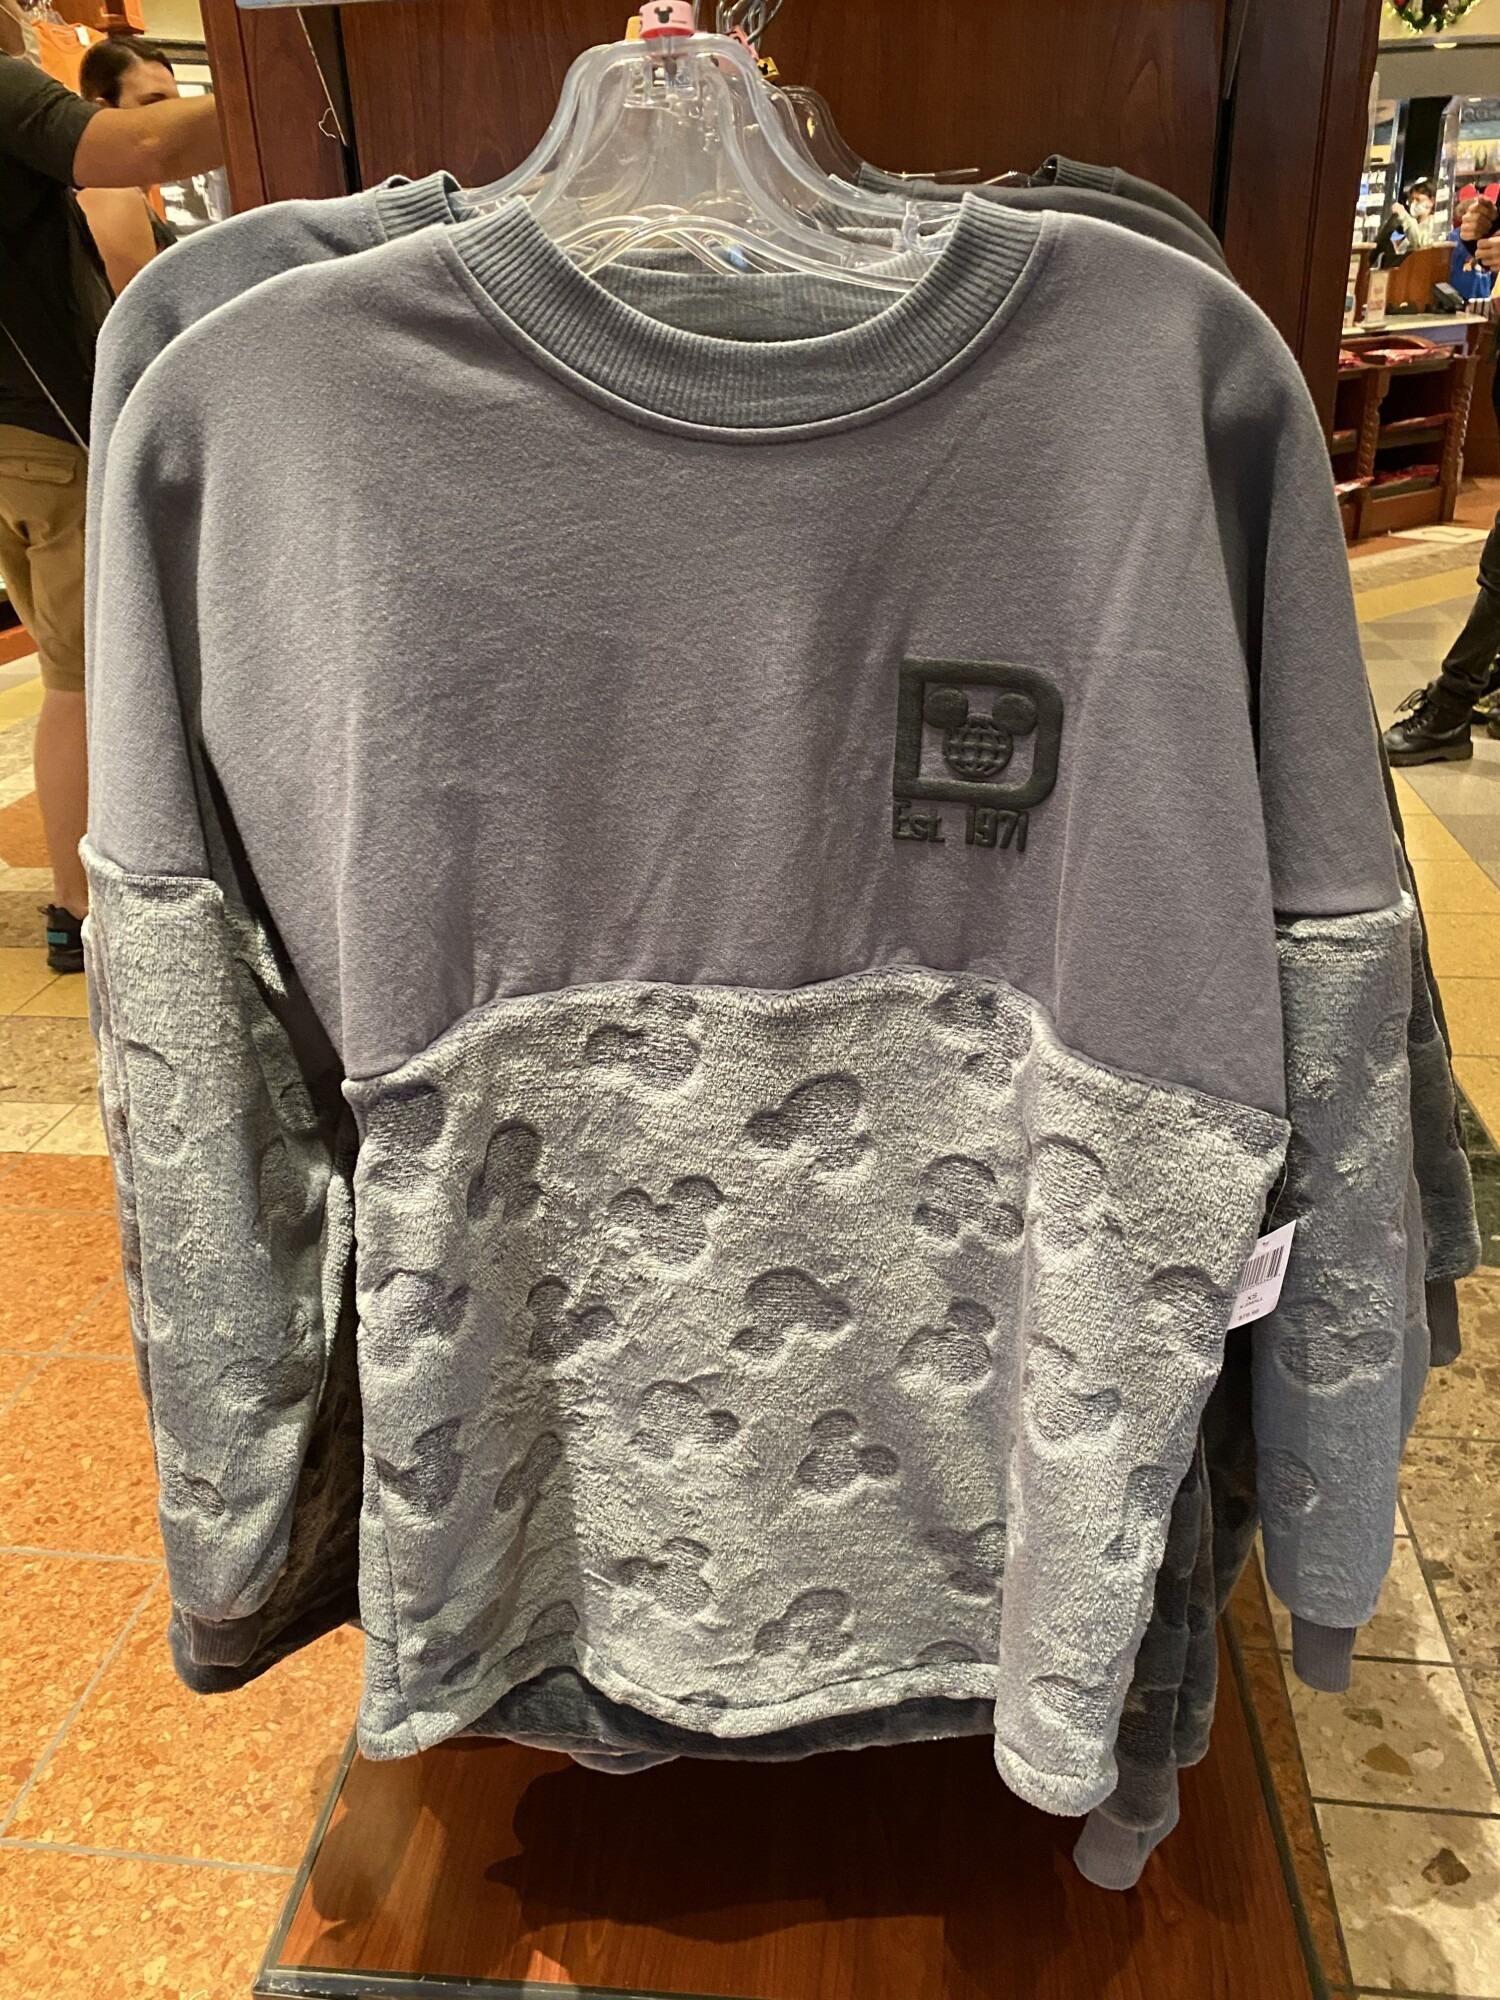 New Sparkly Silver Apparel at Hollywood Studios! 5